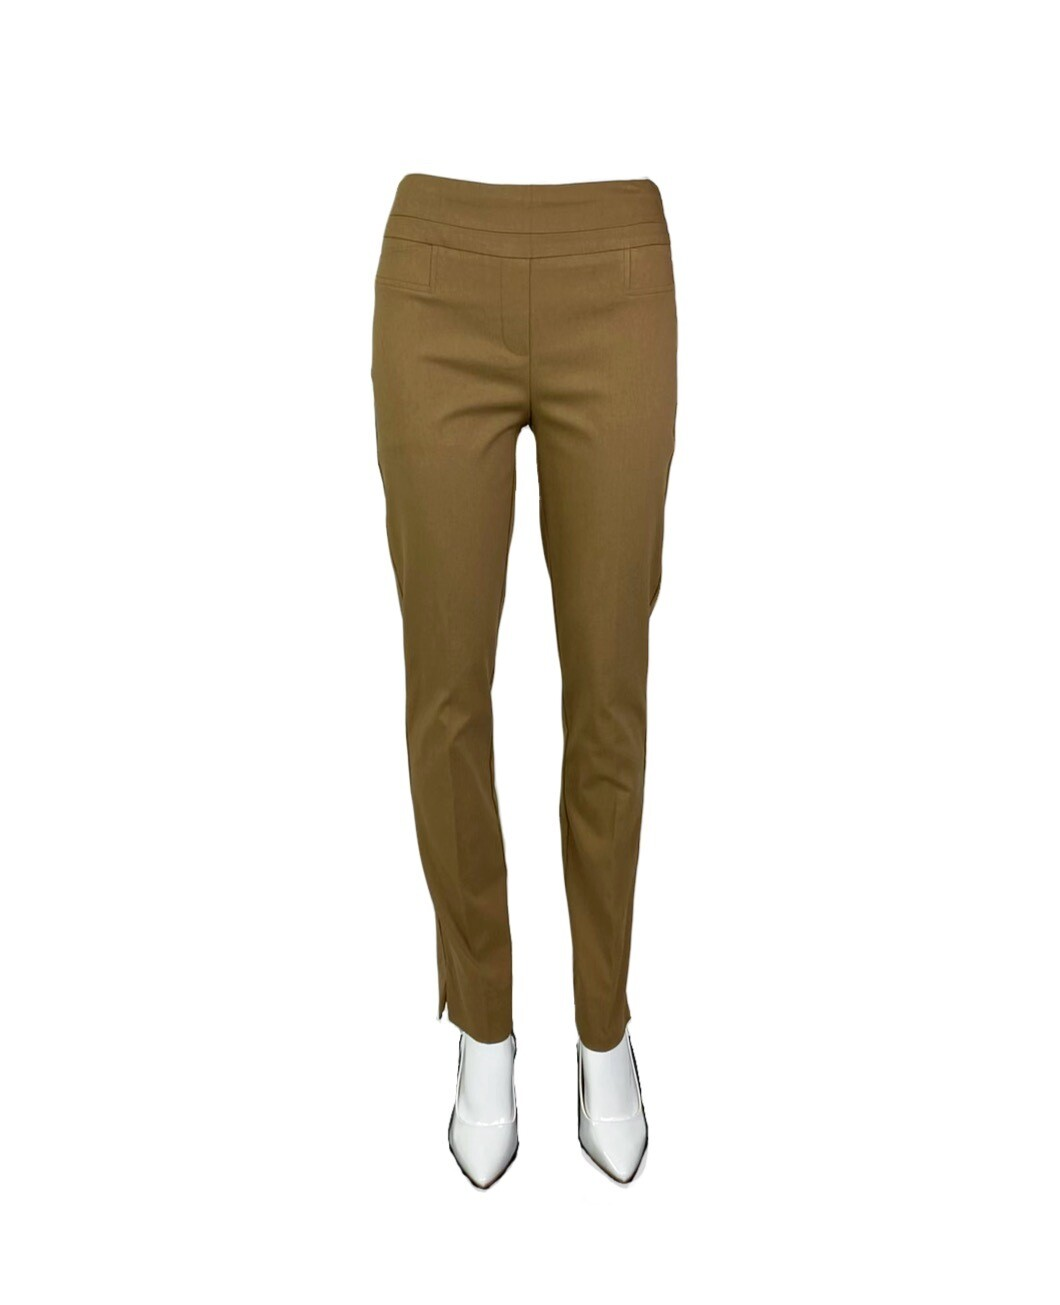 Zoe Classic Pull on Pant